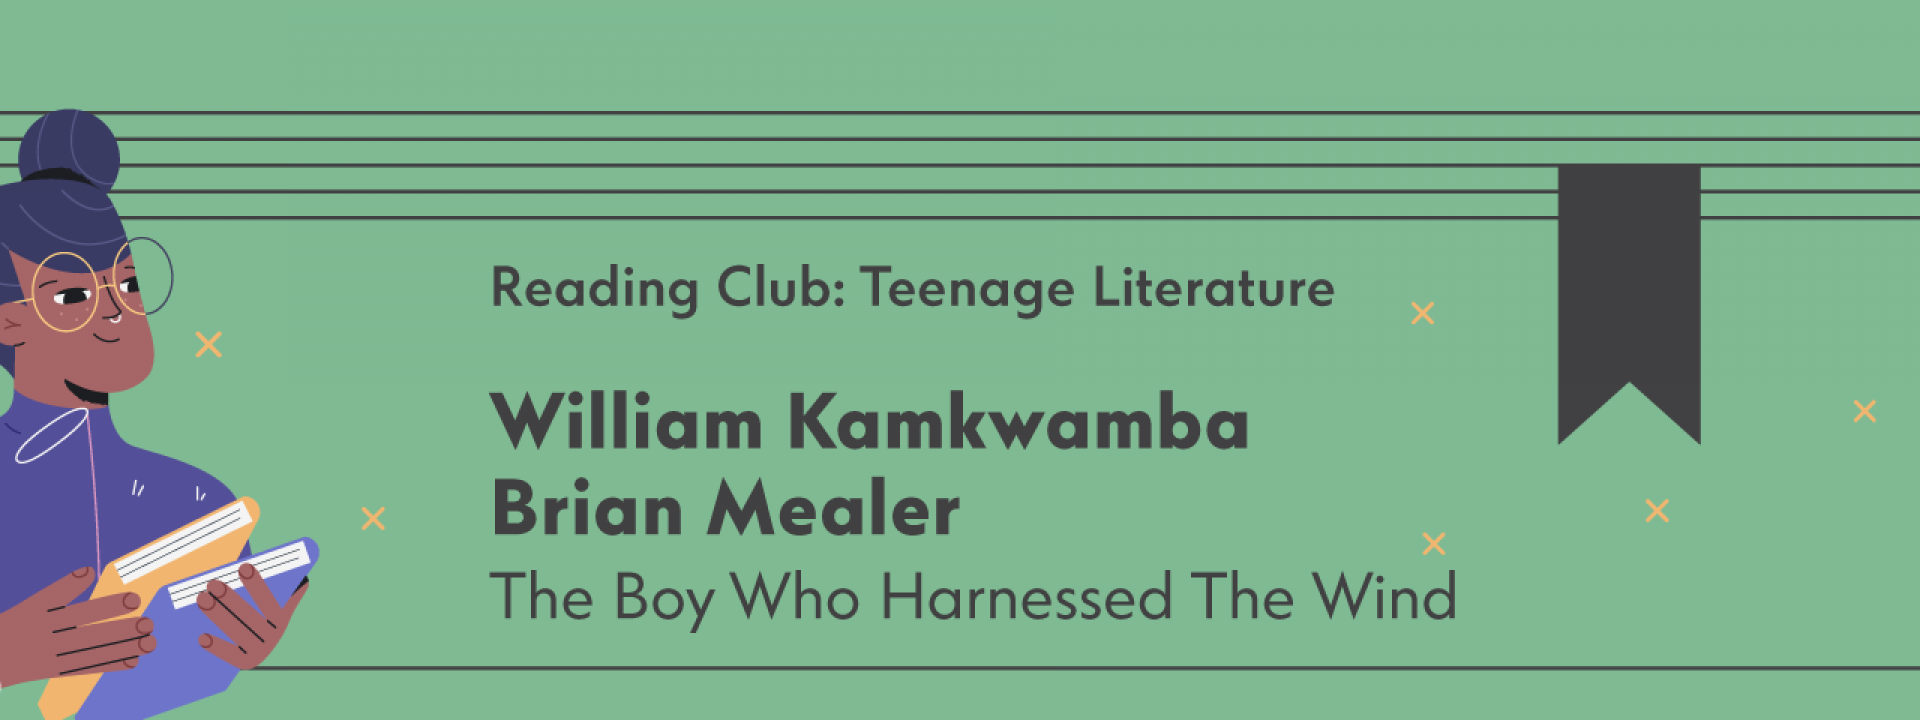 Reading Club: Teenage Literature | The Boy Who Harnessed The Wind - Εικόνα